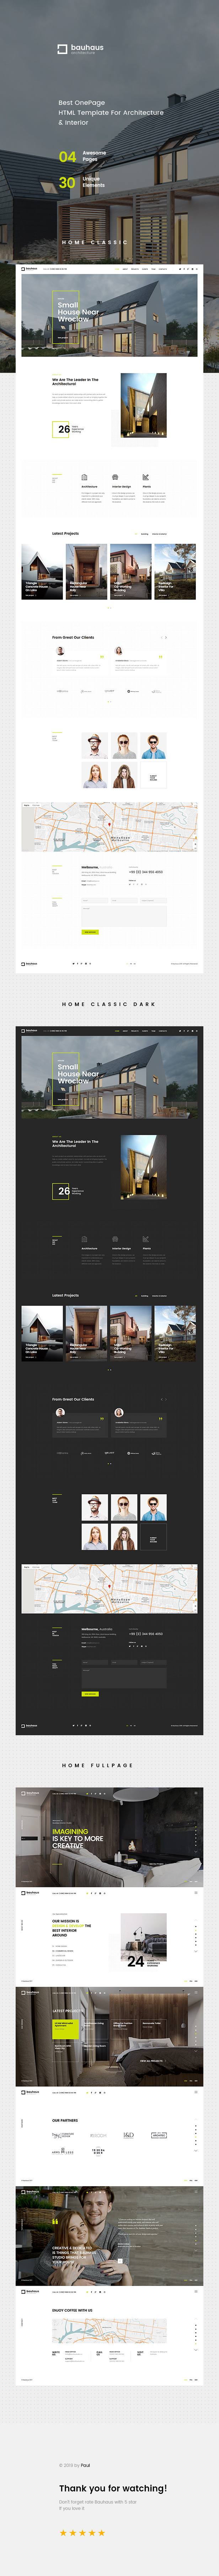 Bauhaus - Architecture & Interior Landing Page HTML Template - 6